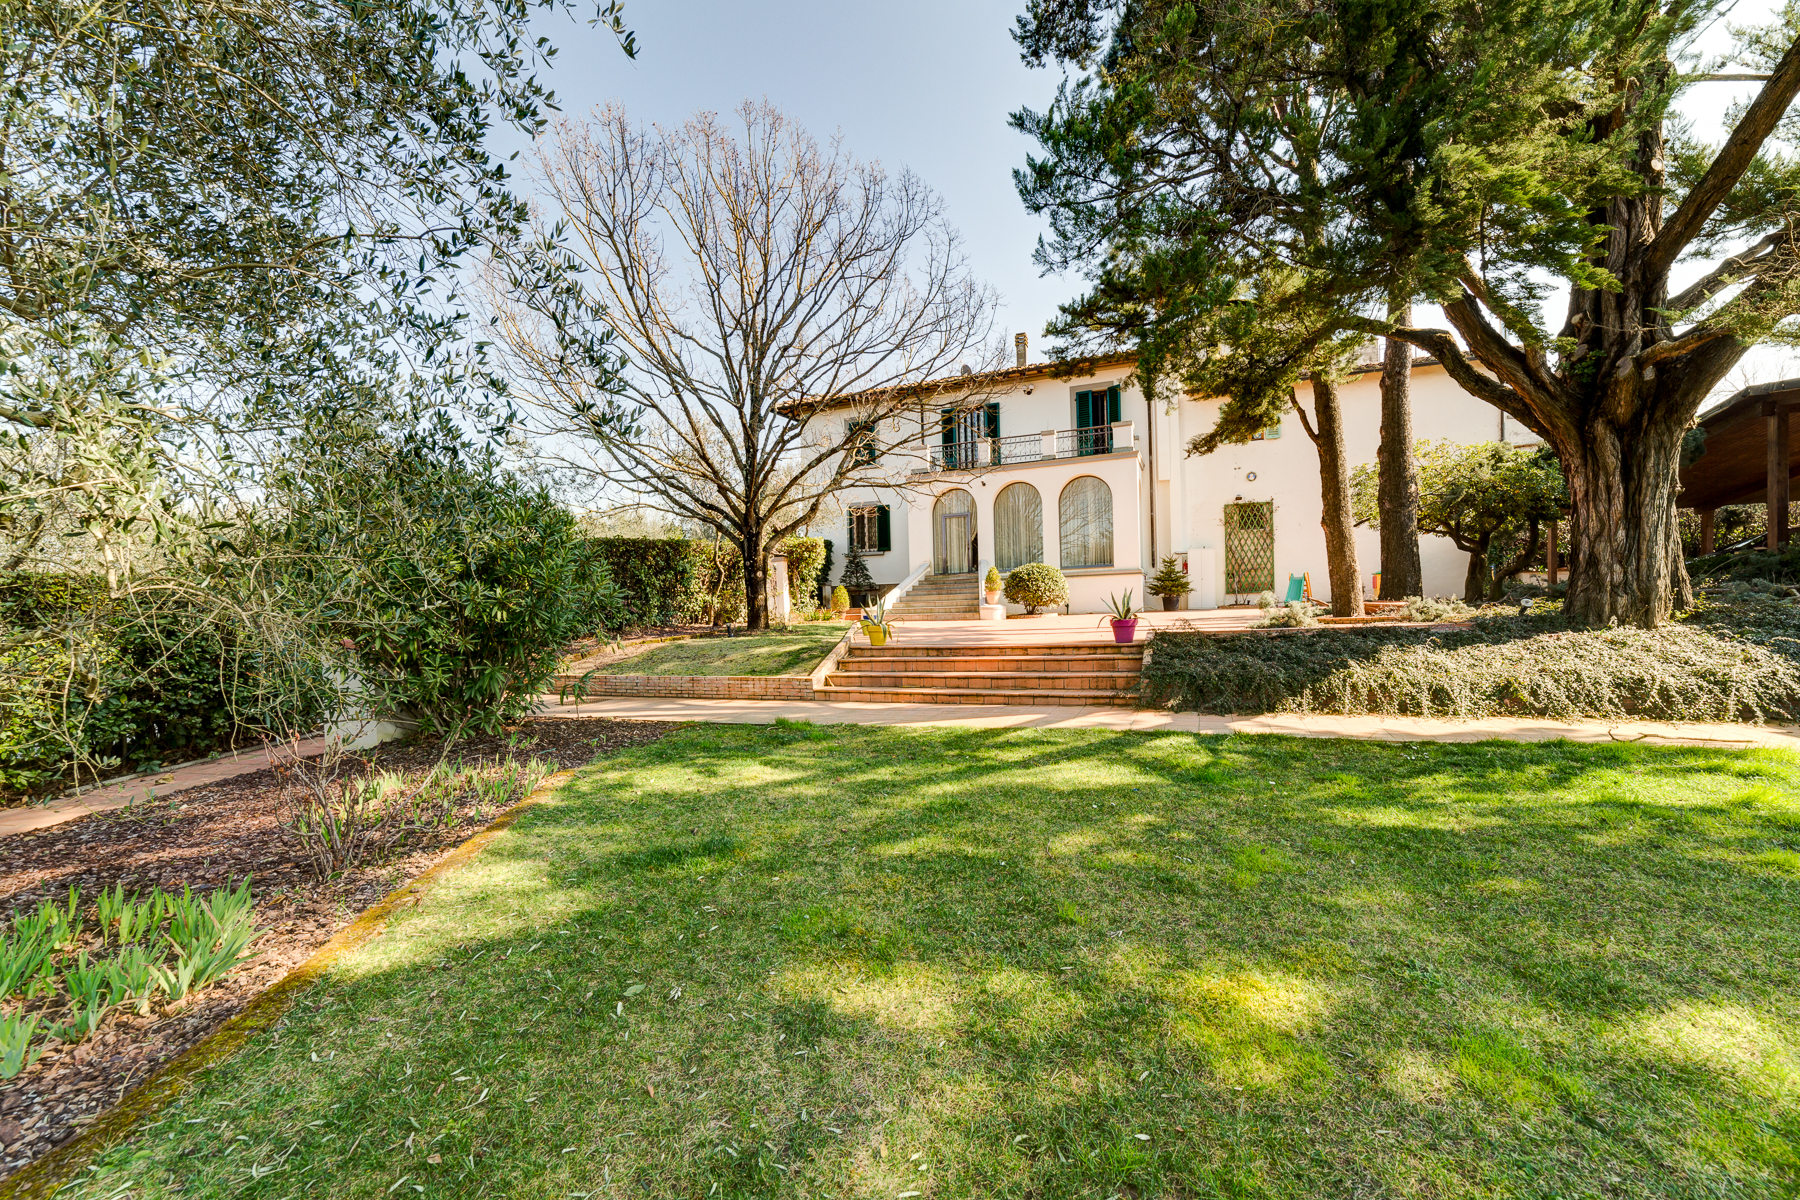 Additional photo for property listing at Lovely villa in the Bagno a Ripoli countryside Via Liliano e Meoli Bagno A Ripoli, Florence 50012 Italy